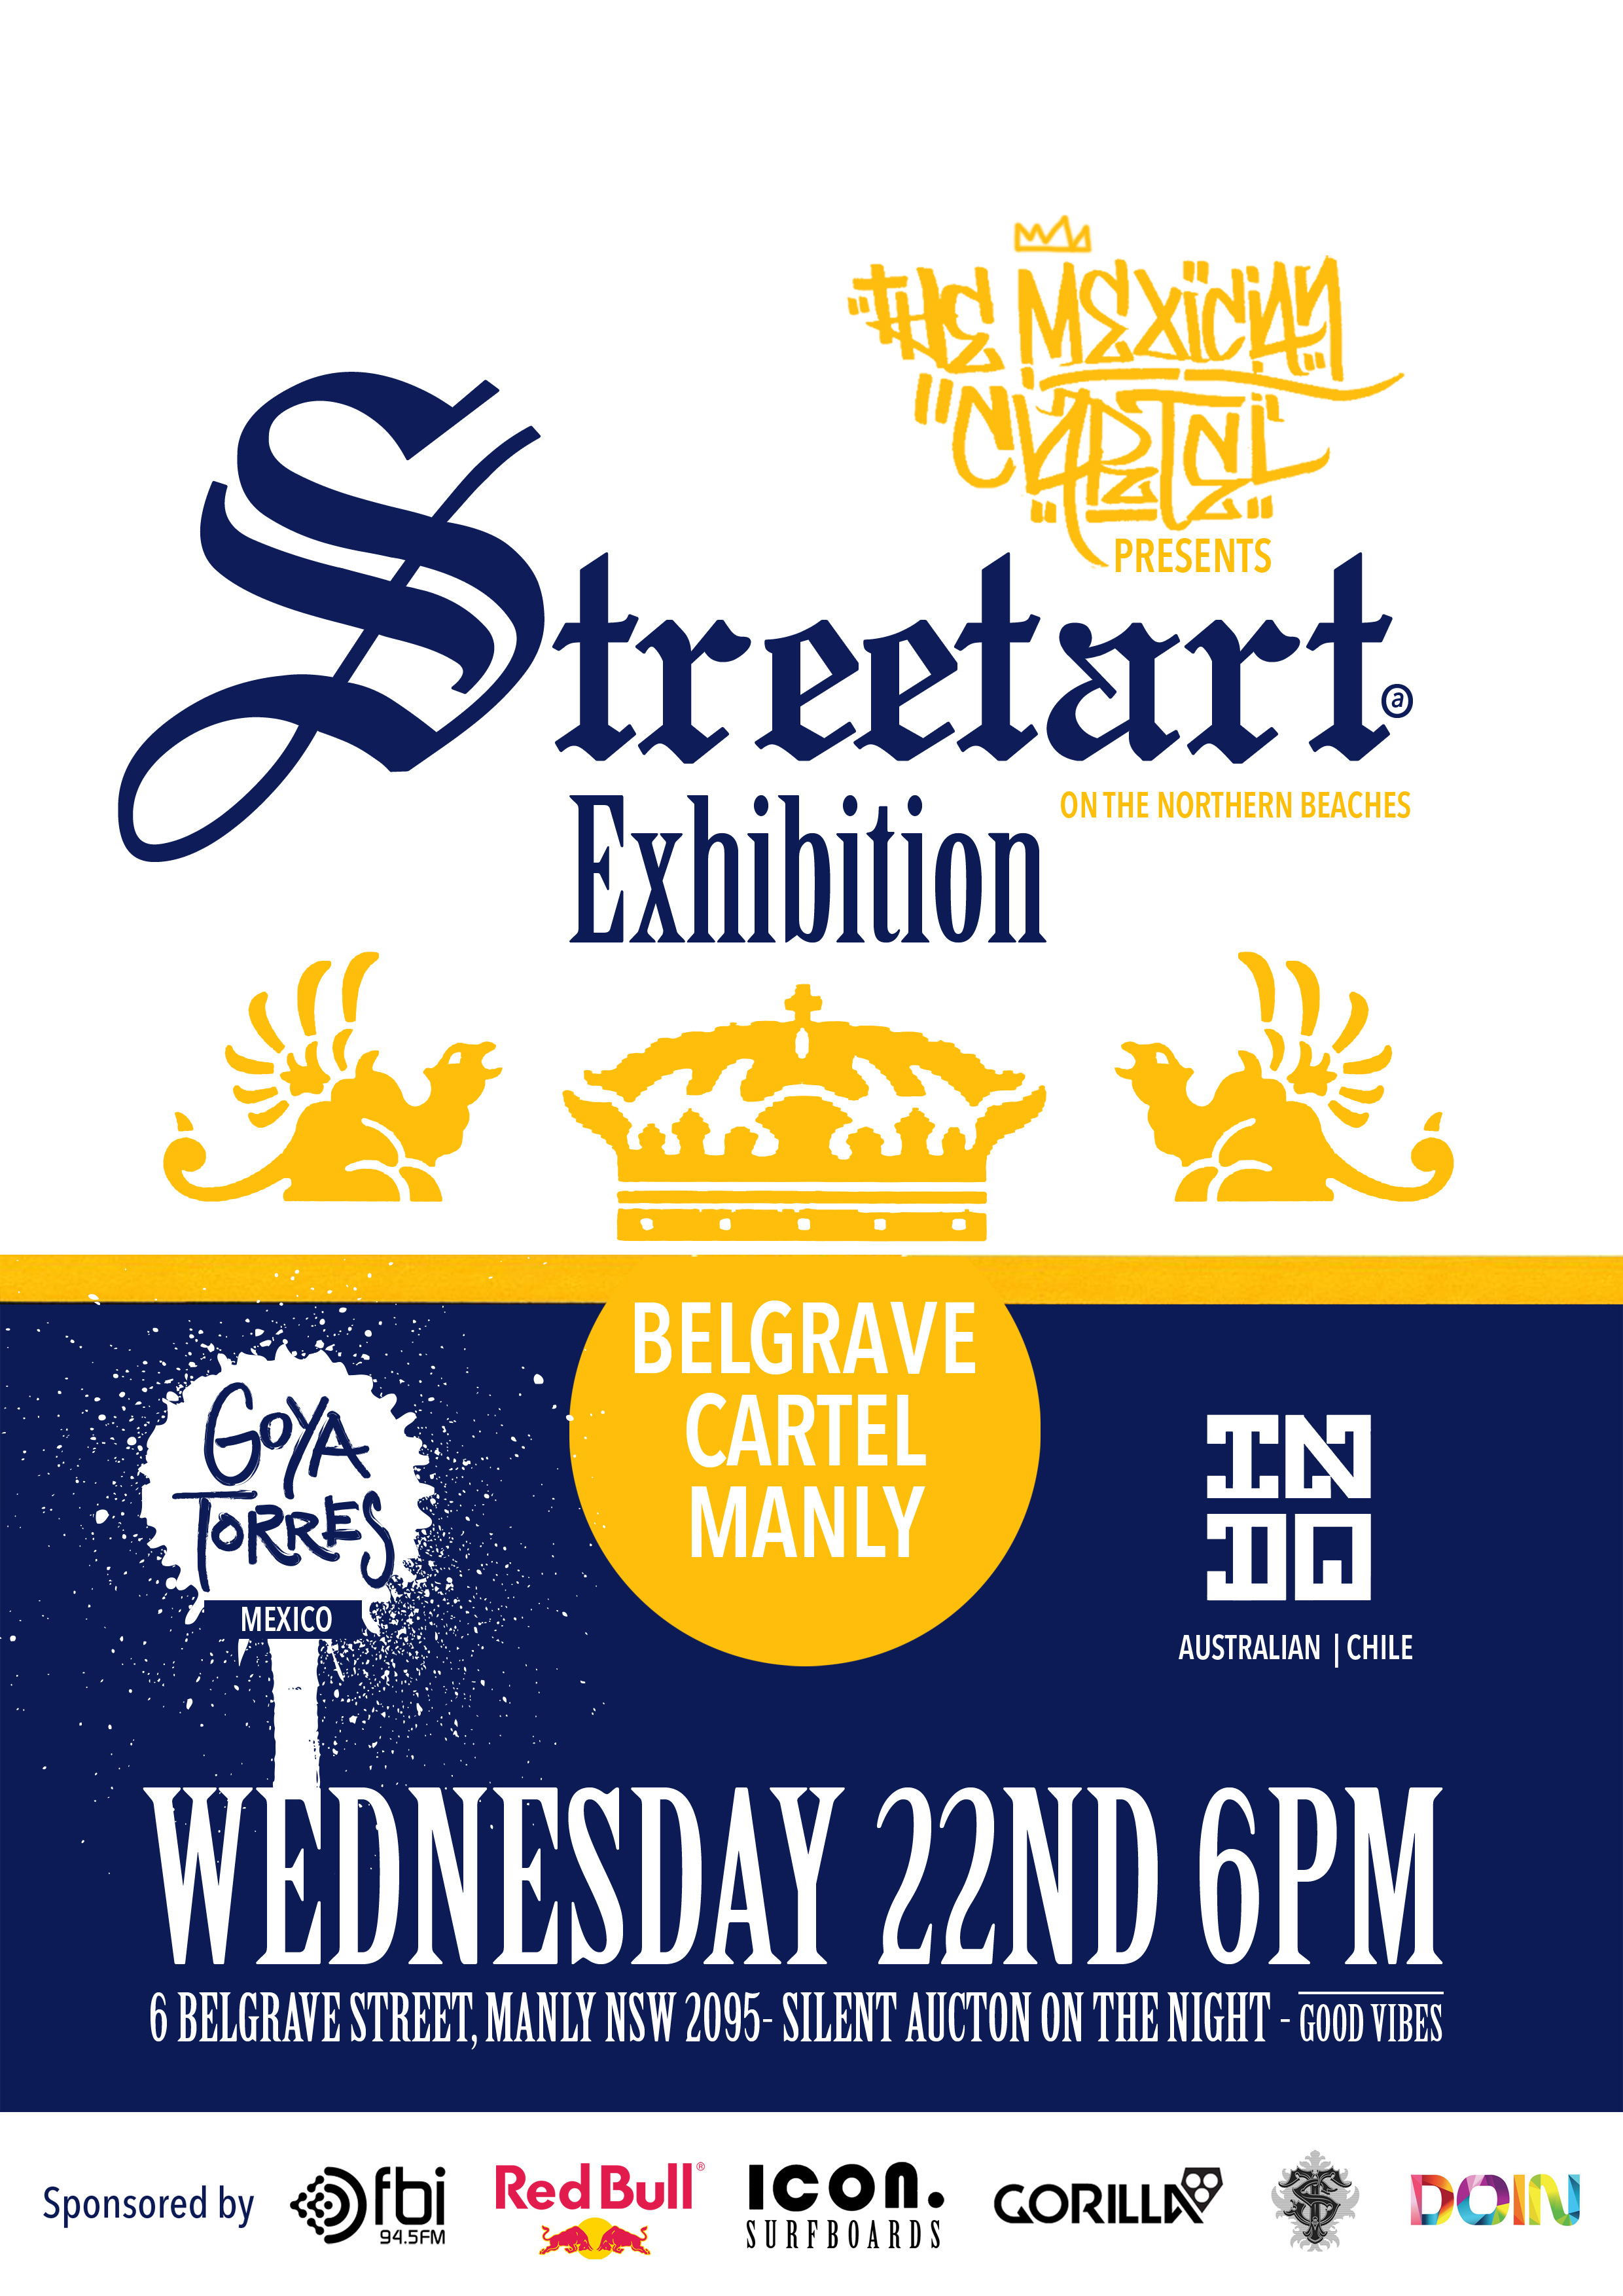 Throwing a MASSIVE ART SHOW in Manly! You gotta come!